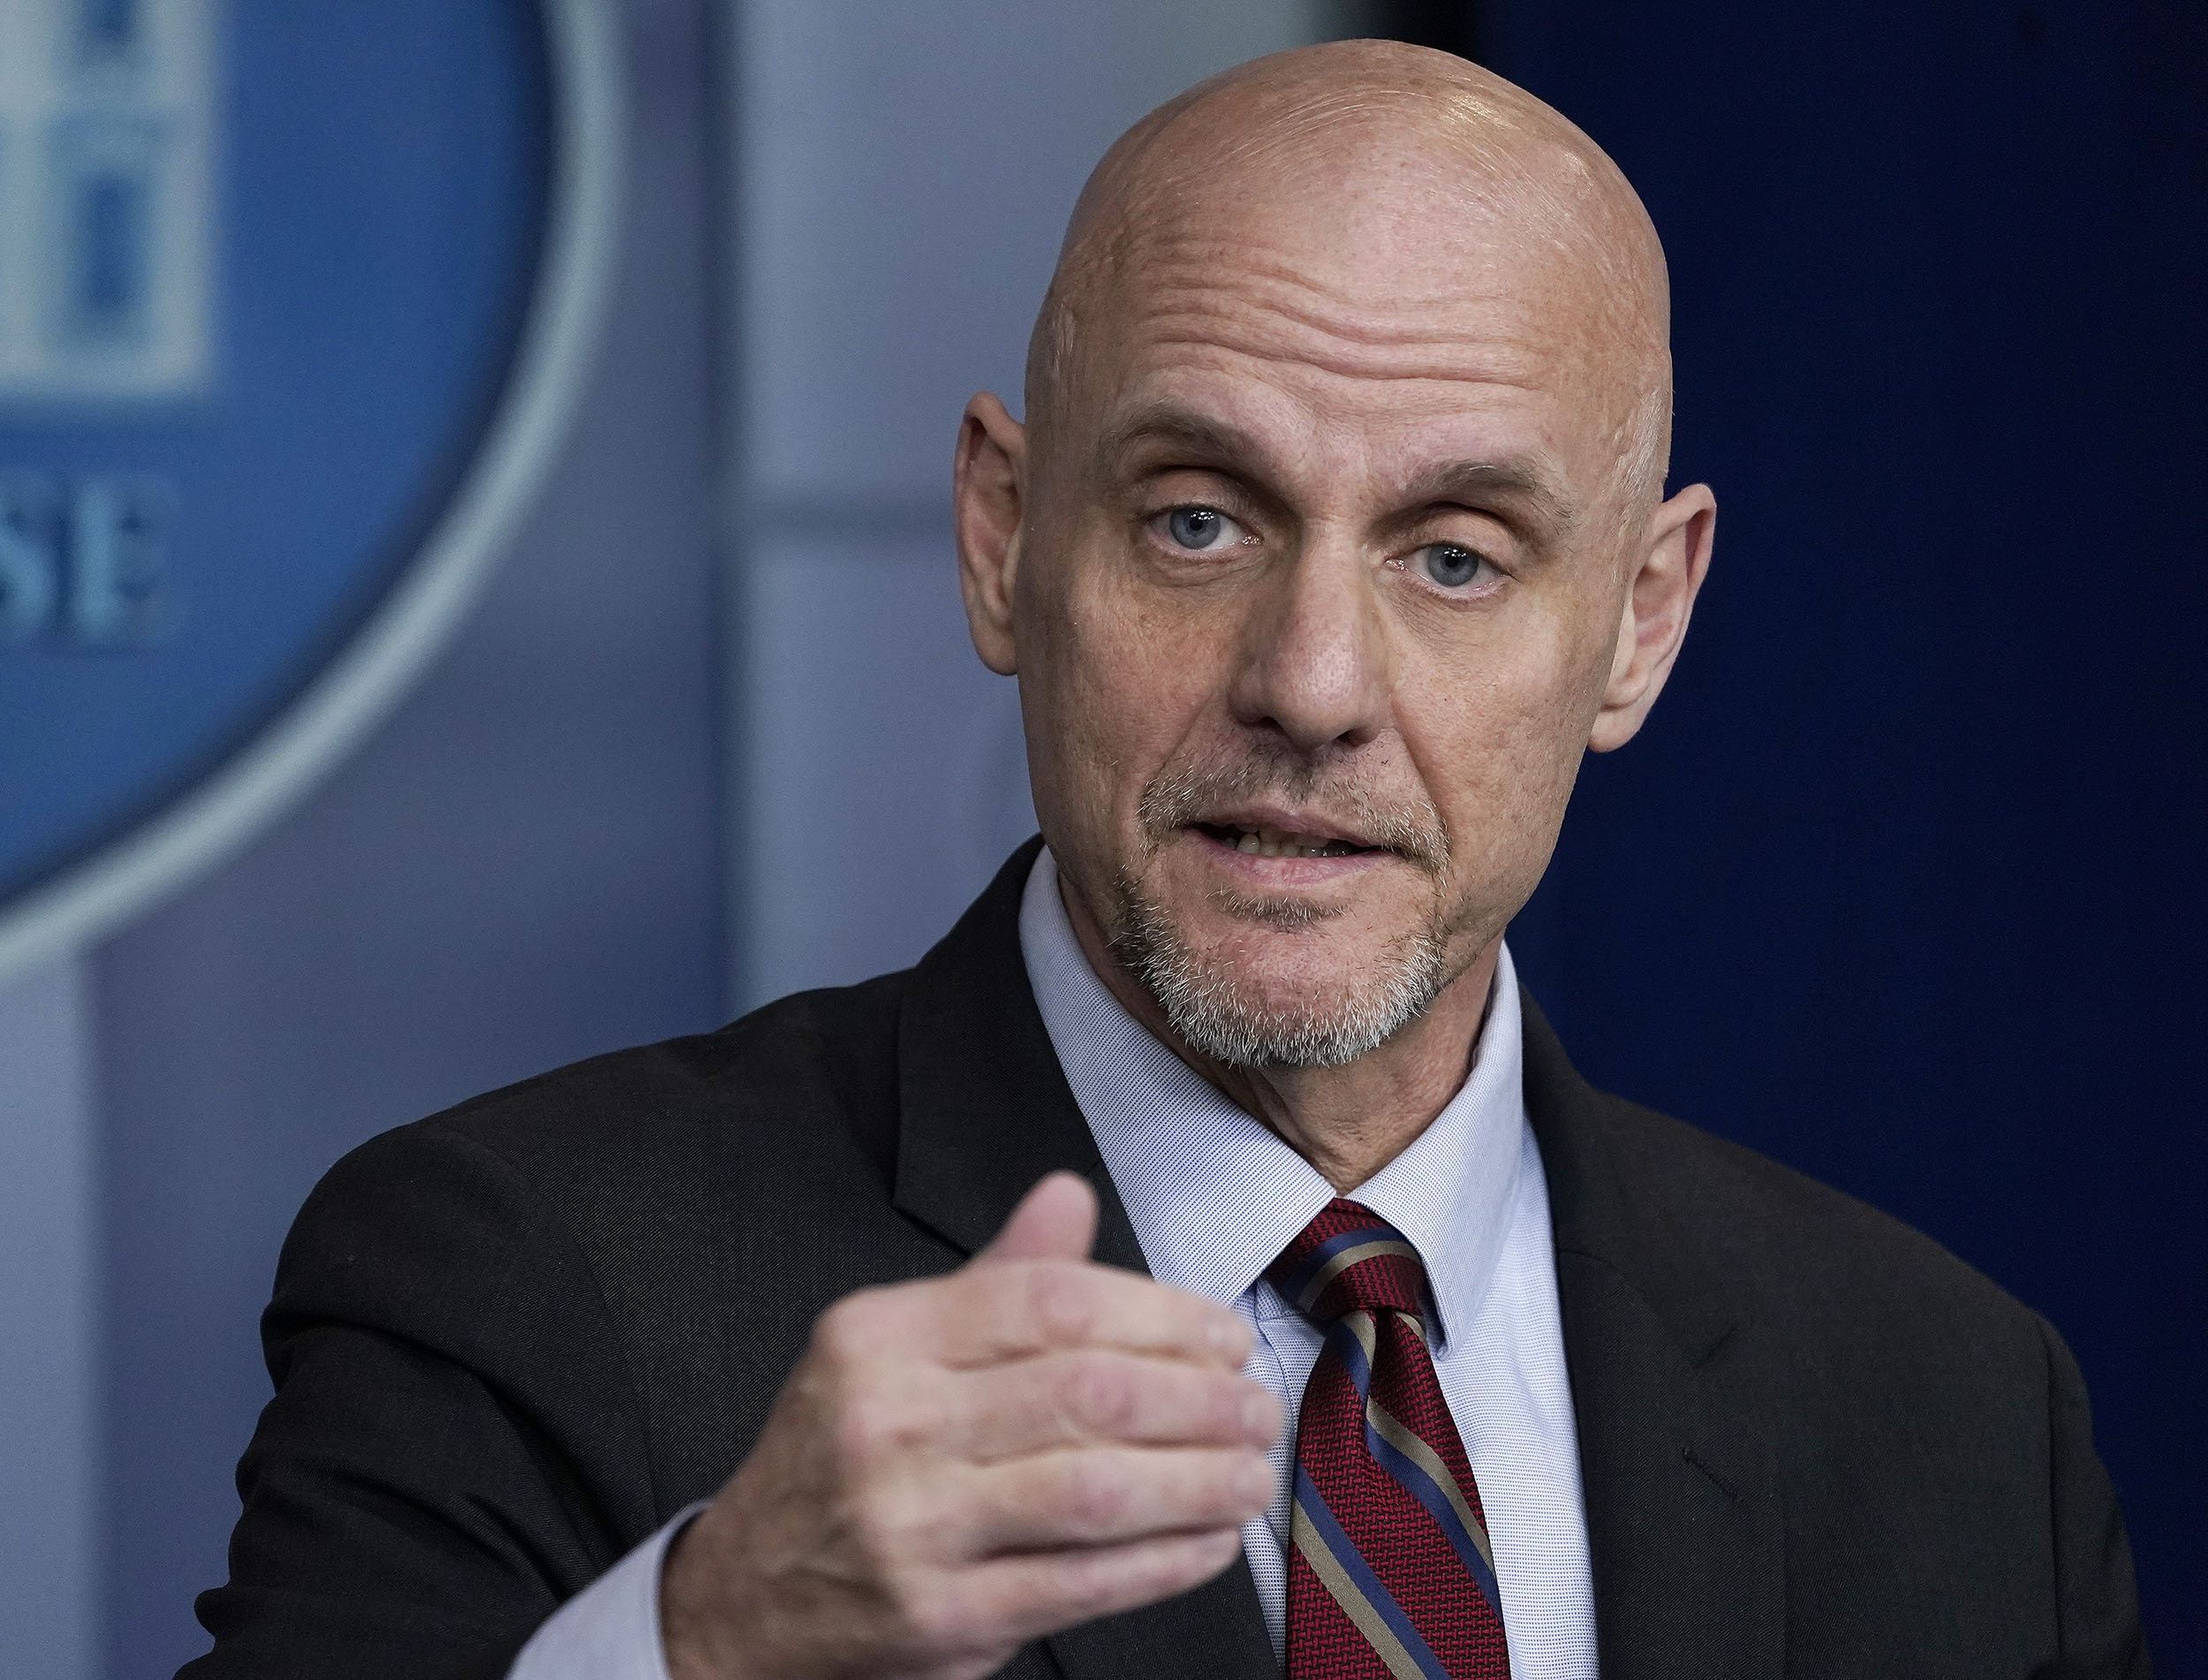 Stephen Hawn, director of the Food and Drug Administration, speaks during the coronavirus daily briefing at the White House in Washington D.C., on April 21.